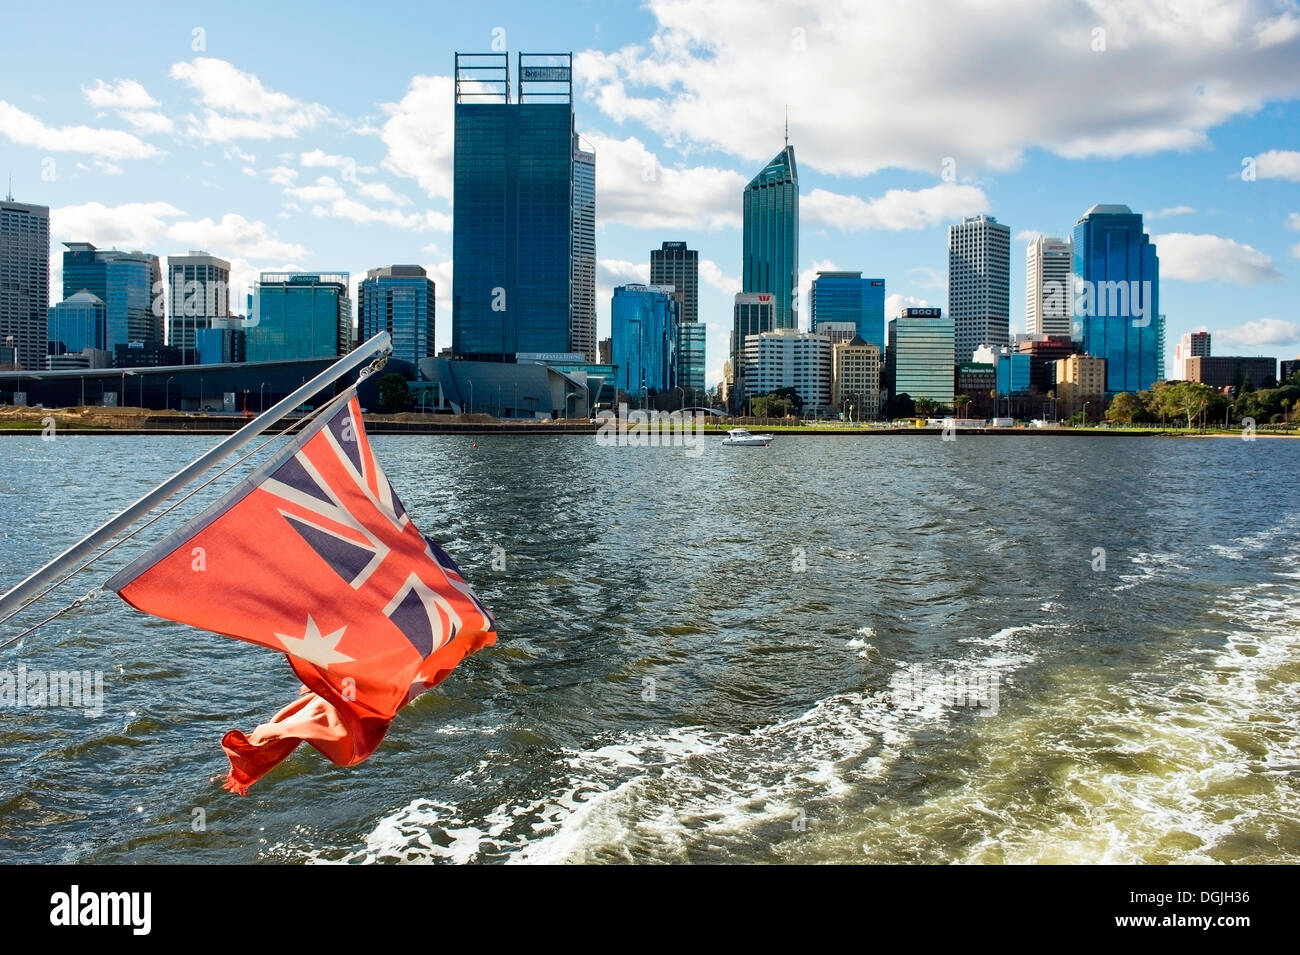 The Australian Red Ensign flown on a boat as it sails past the city of Perth. - Stock Image